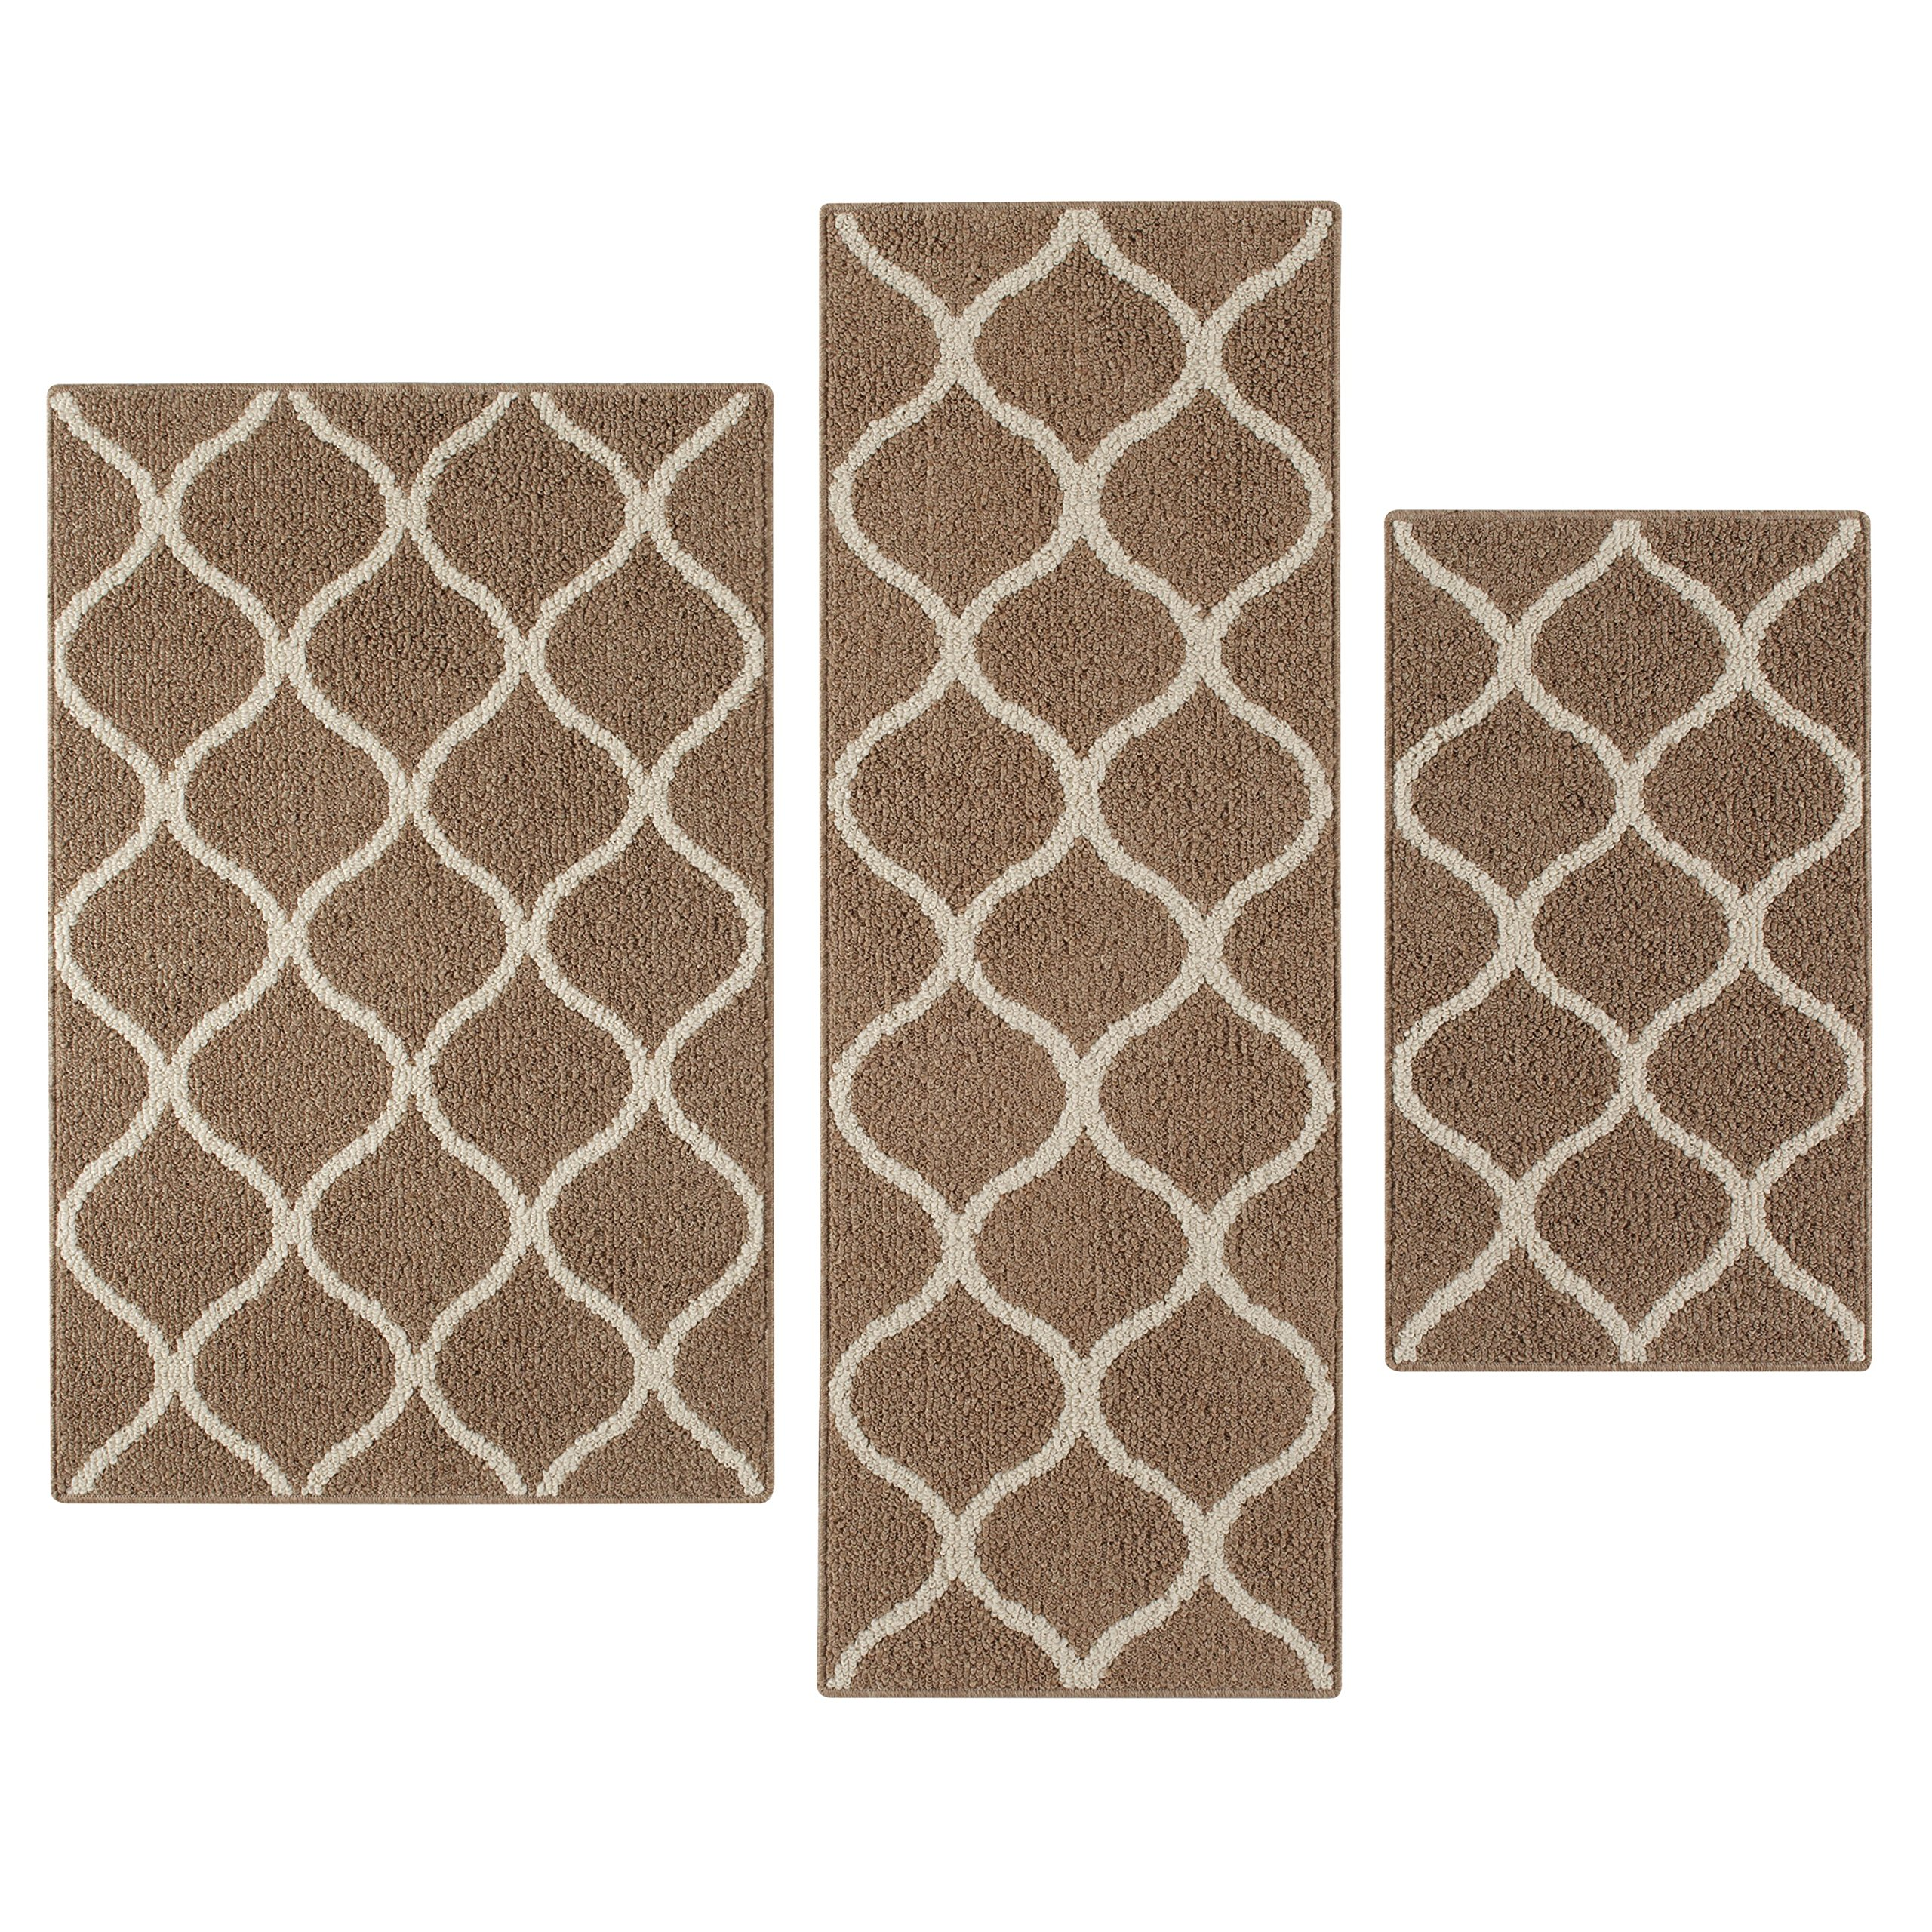 Maples Rugs Kitchen Rug Set - Rebecca [3pc Set] Non Kid Accent Throw Rugs Runner [Made in USA] for Entryway and Bedroom, Café Brown/White by Maples Rugs